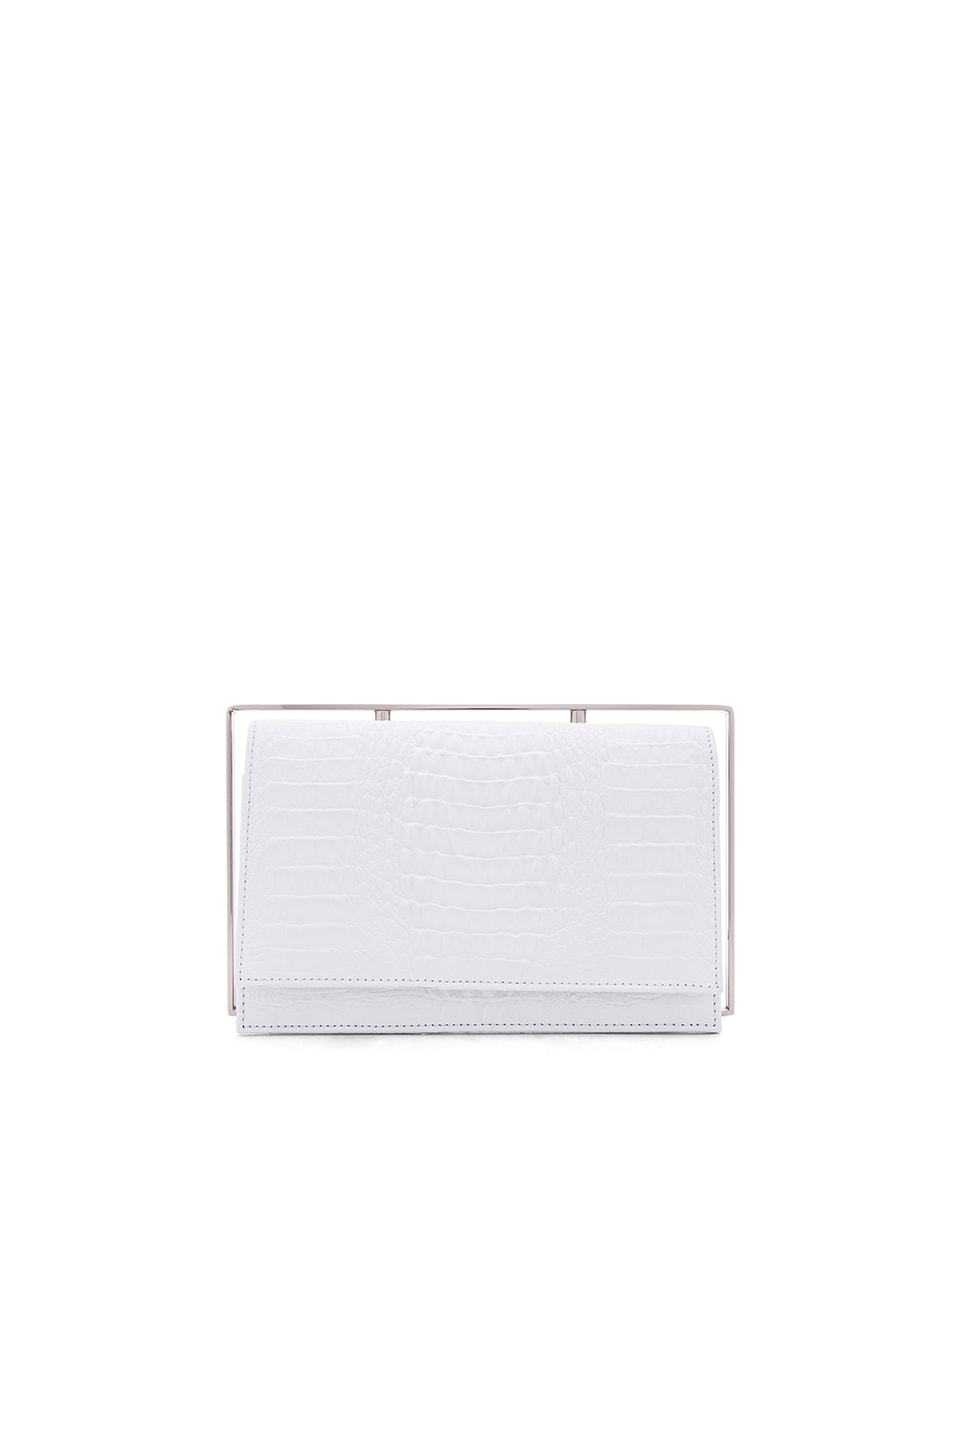 OLCAY GULSEN Frame Clutch Structure in Nude & White